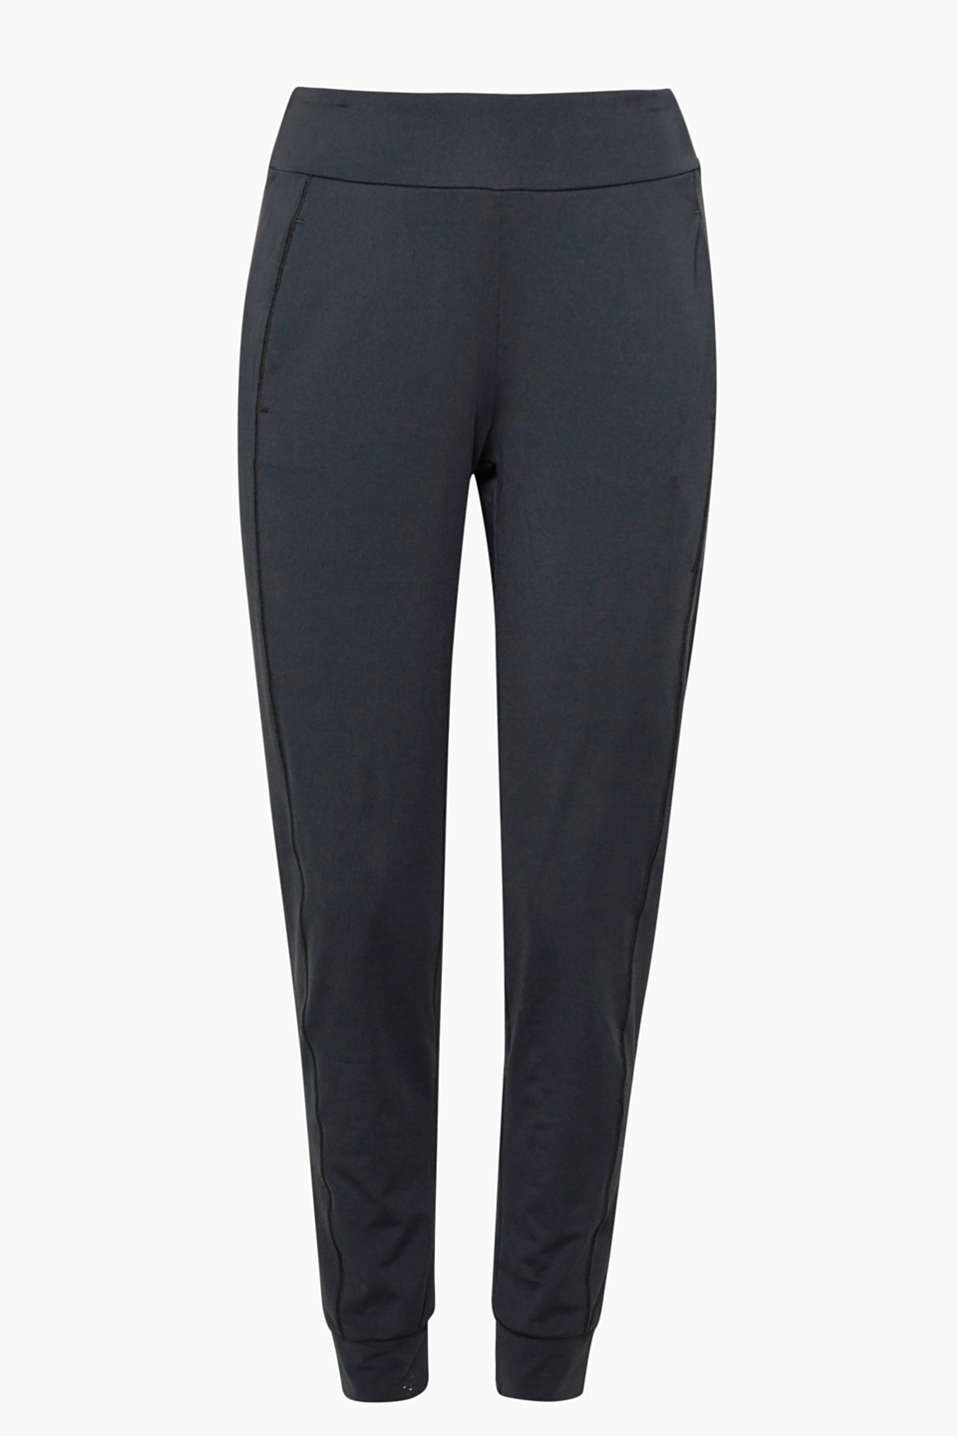 These casual, active tracksuit bottoms with hem borders and E-DRY technology are mega comfy and highly functional!